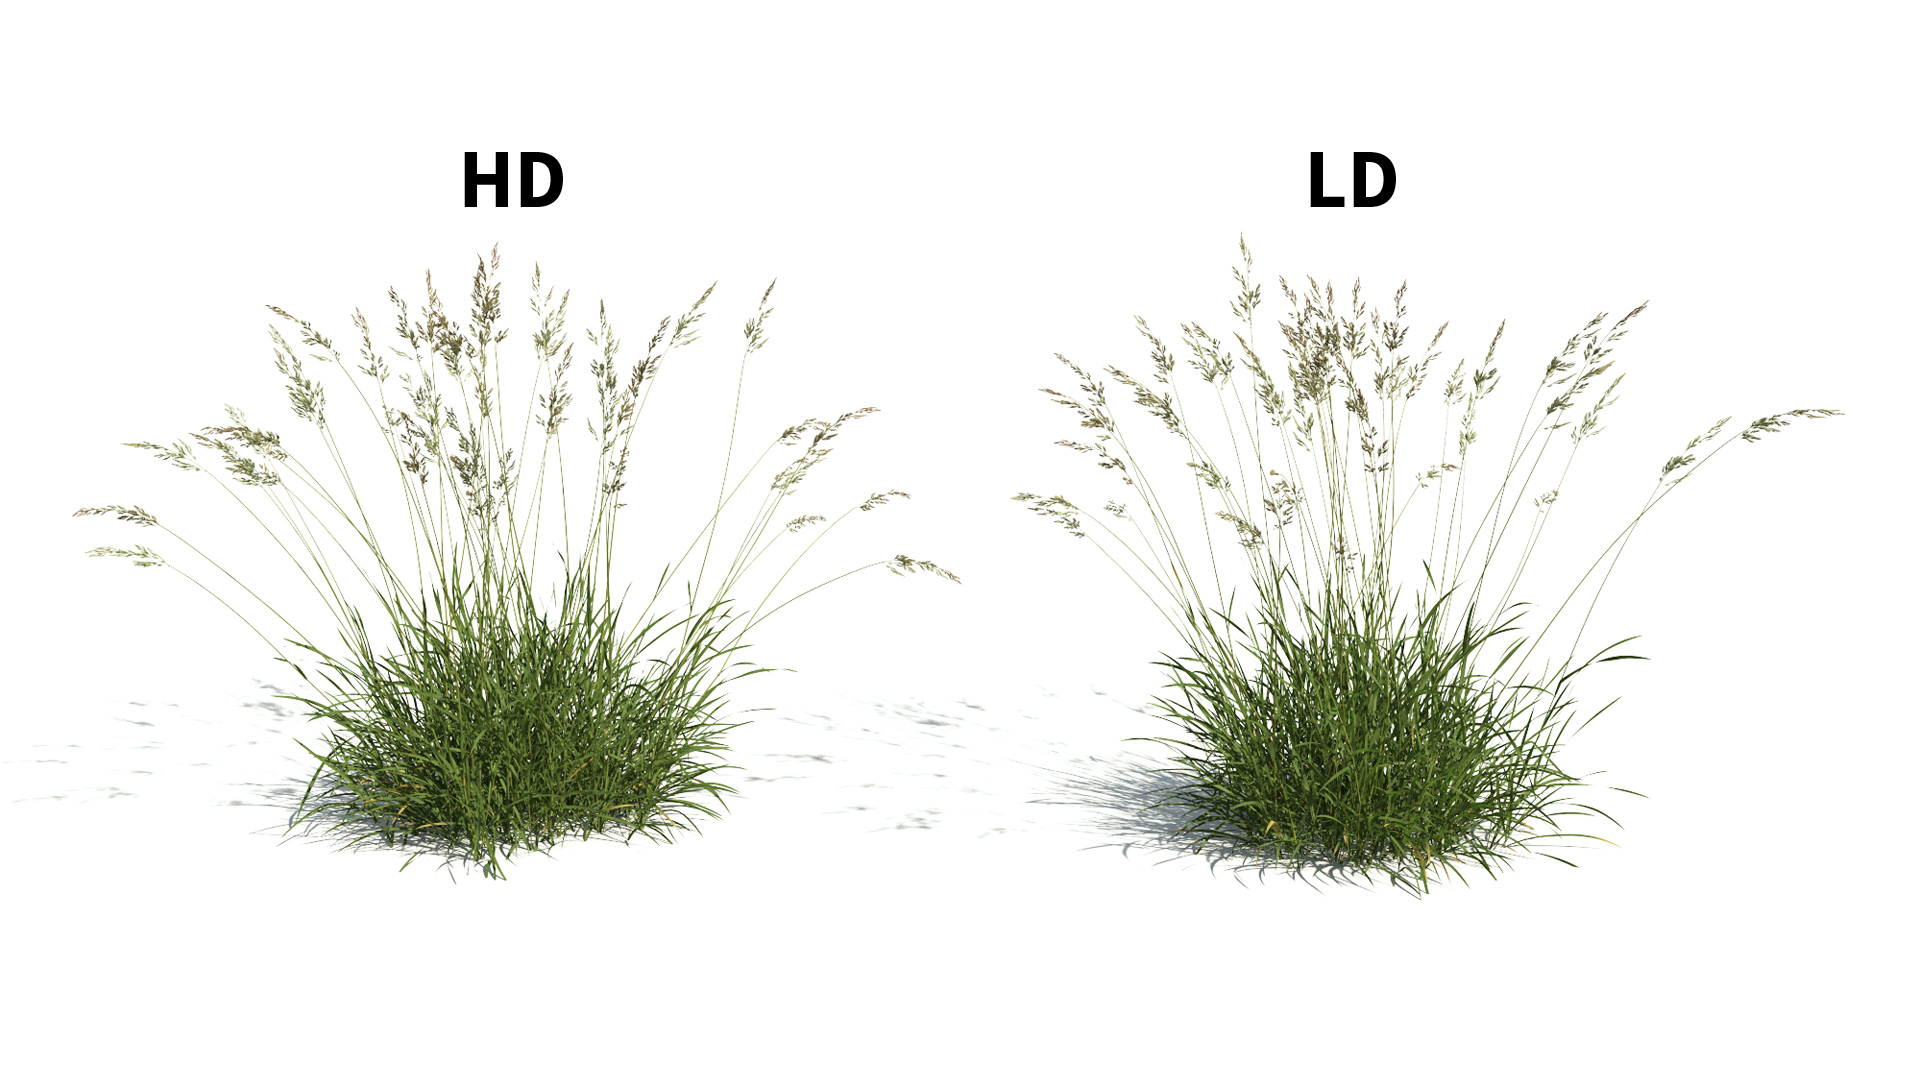 3D model of the Red fescue Festuca rubra included versions